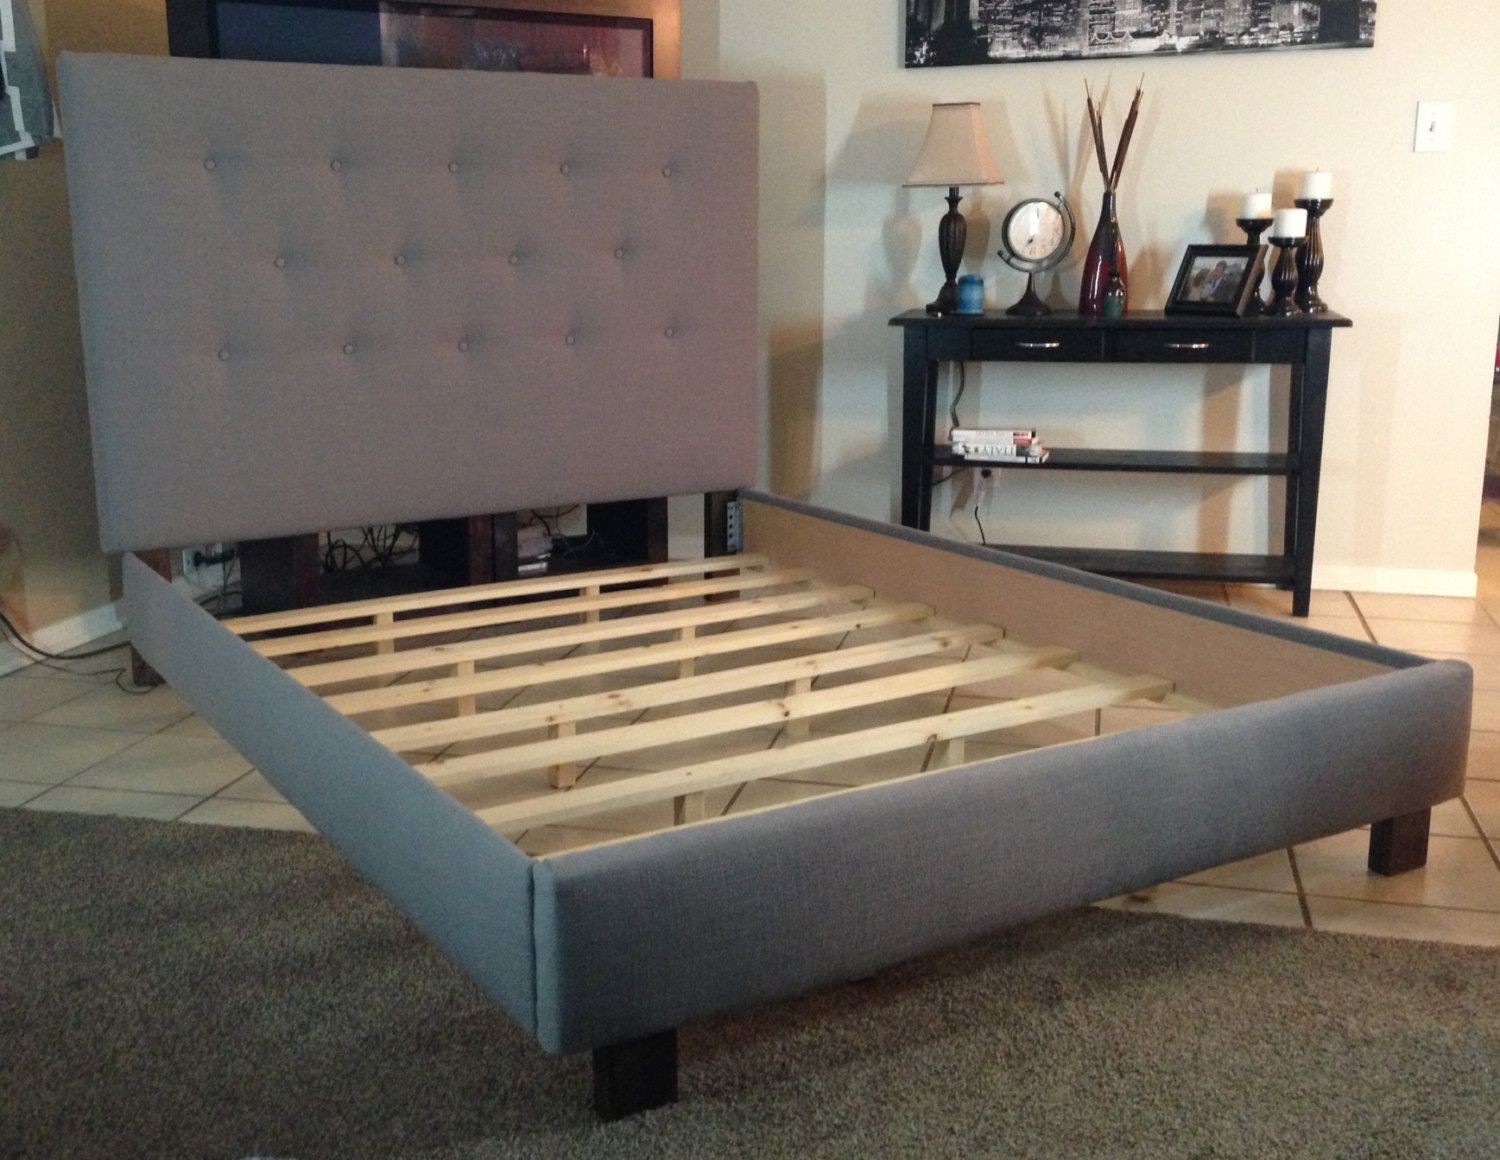 Queen or full size headboard and bed frame Gray Linen upholstered by lilykayy on Etsy & Queen or full size headboard and bed frame Gray Linen upholstered by ...